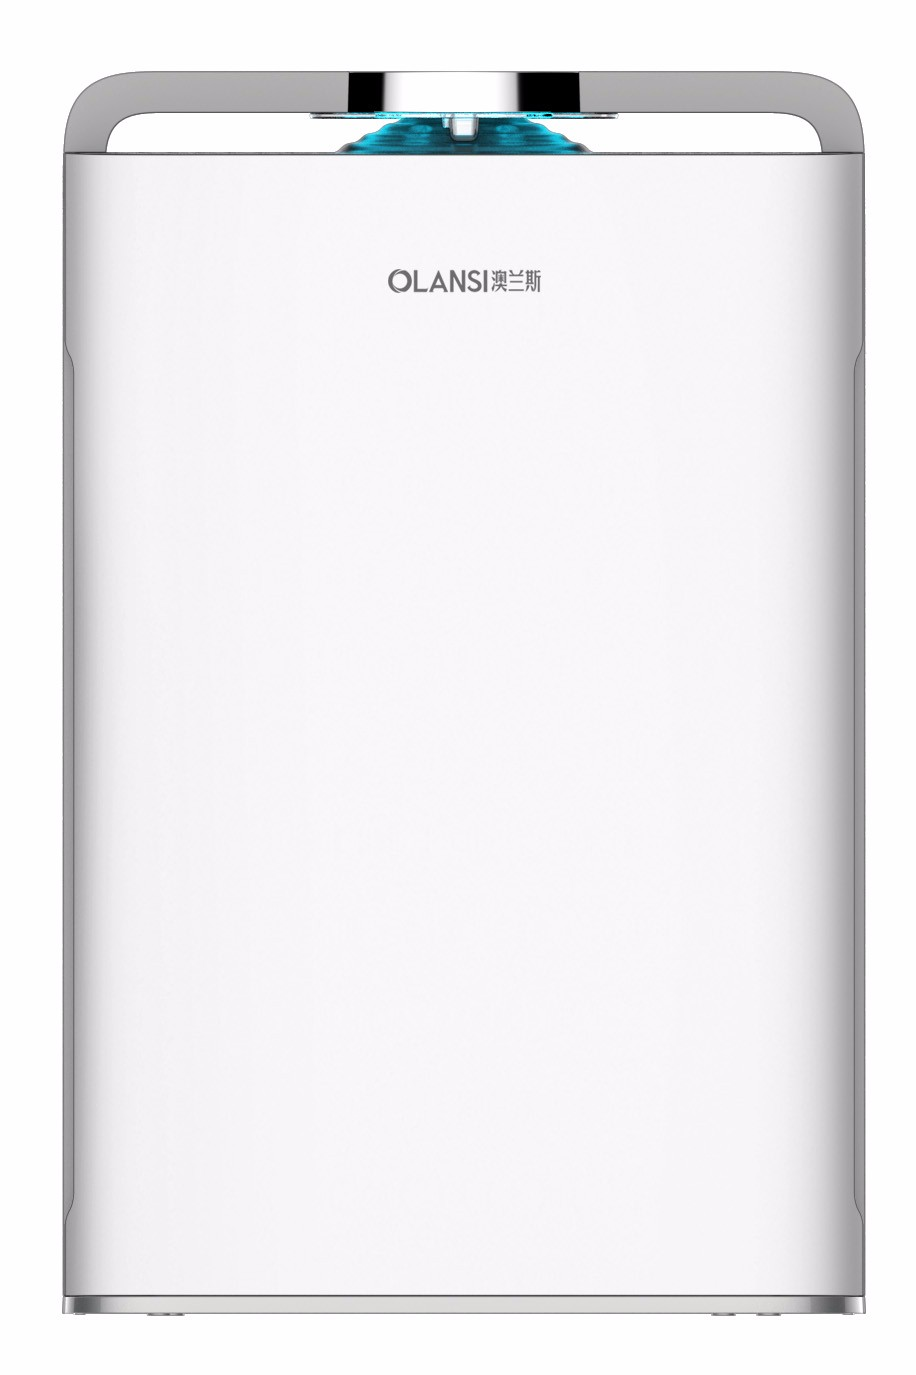 Welling health care good quality K08A air purifier with humidifier function olansi